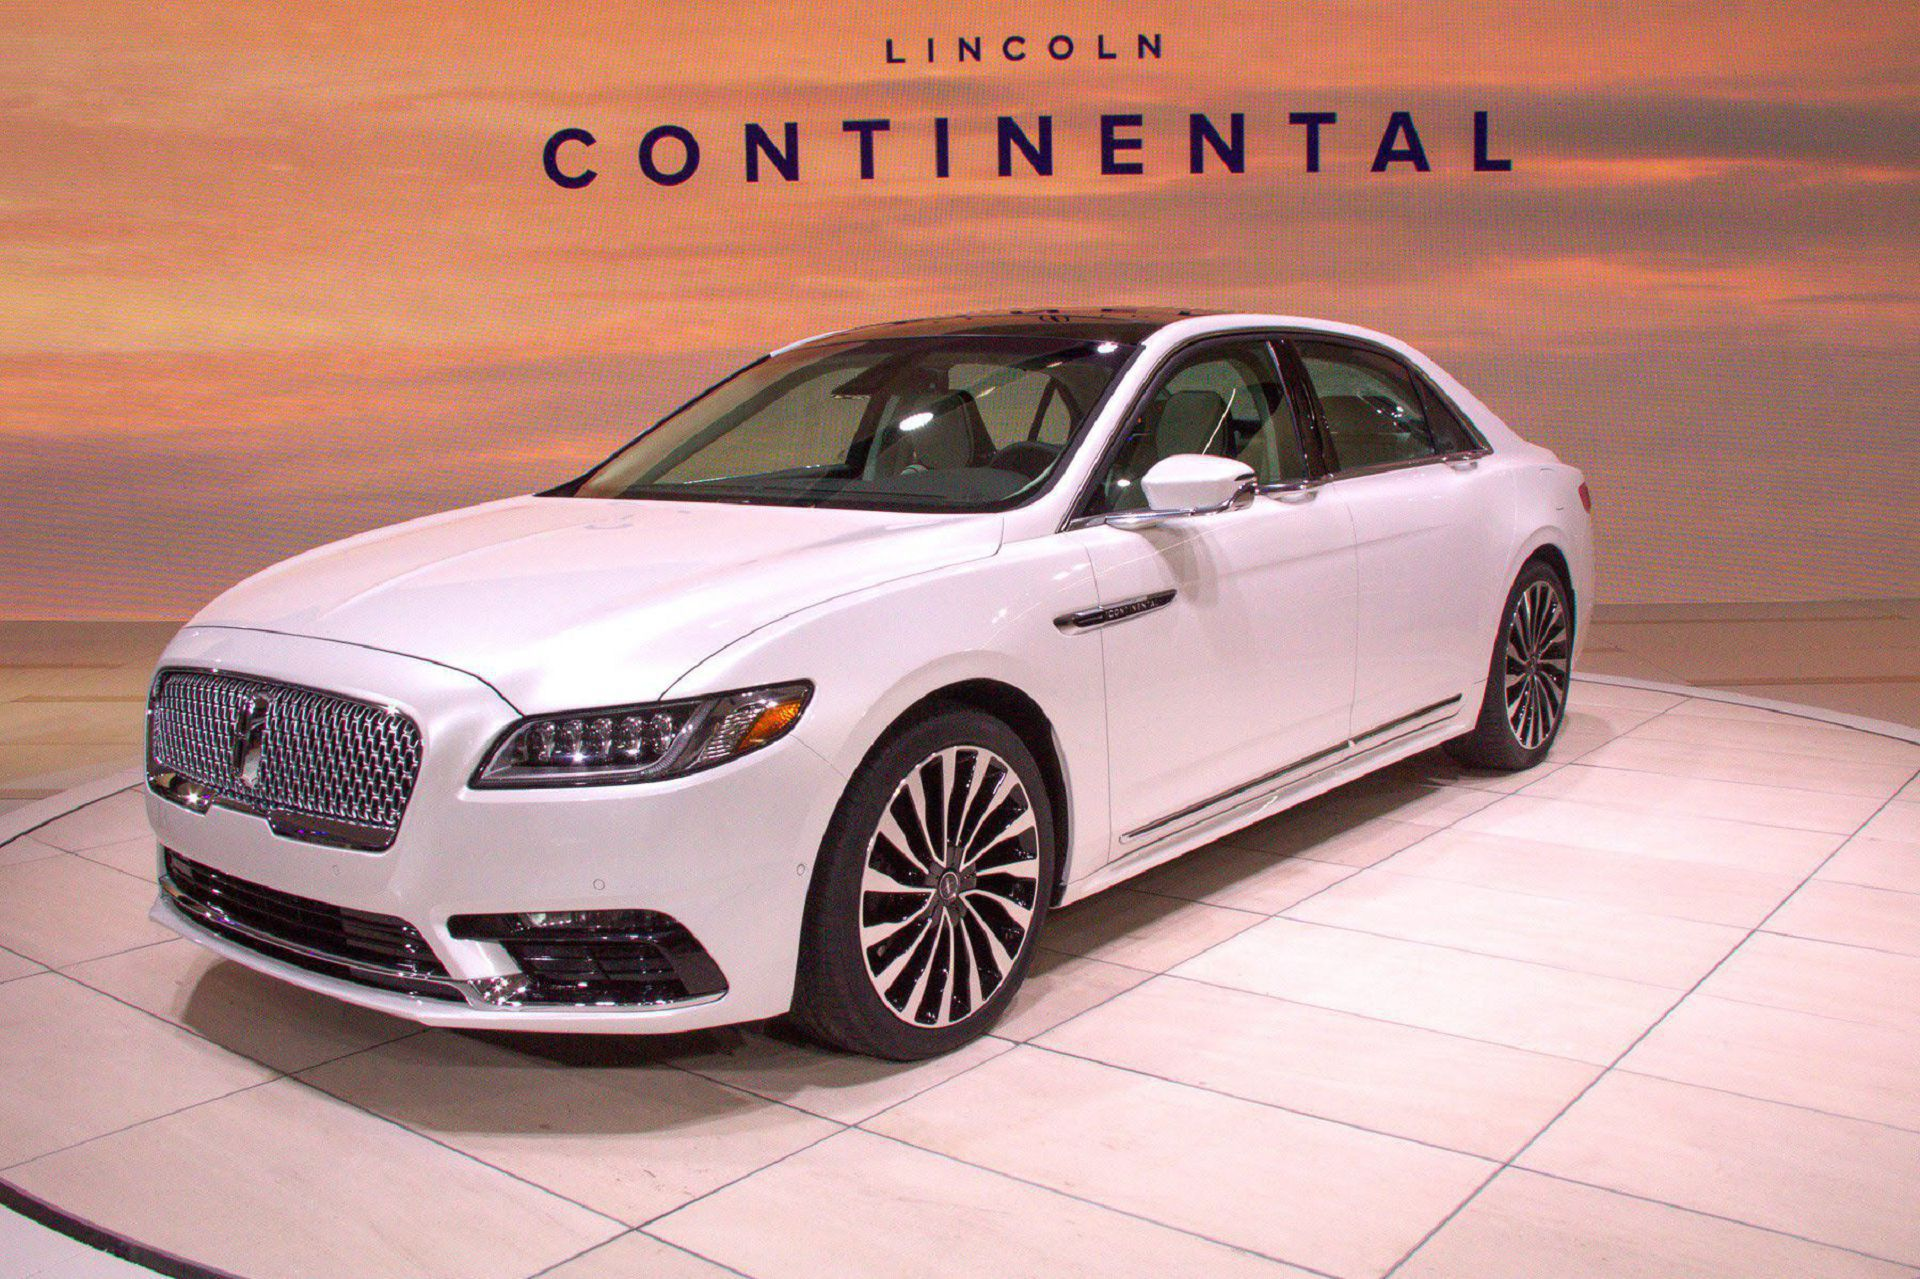 Lincoln Continental Wallpaper For Computer